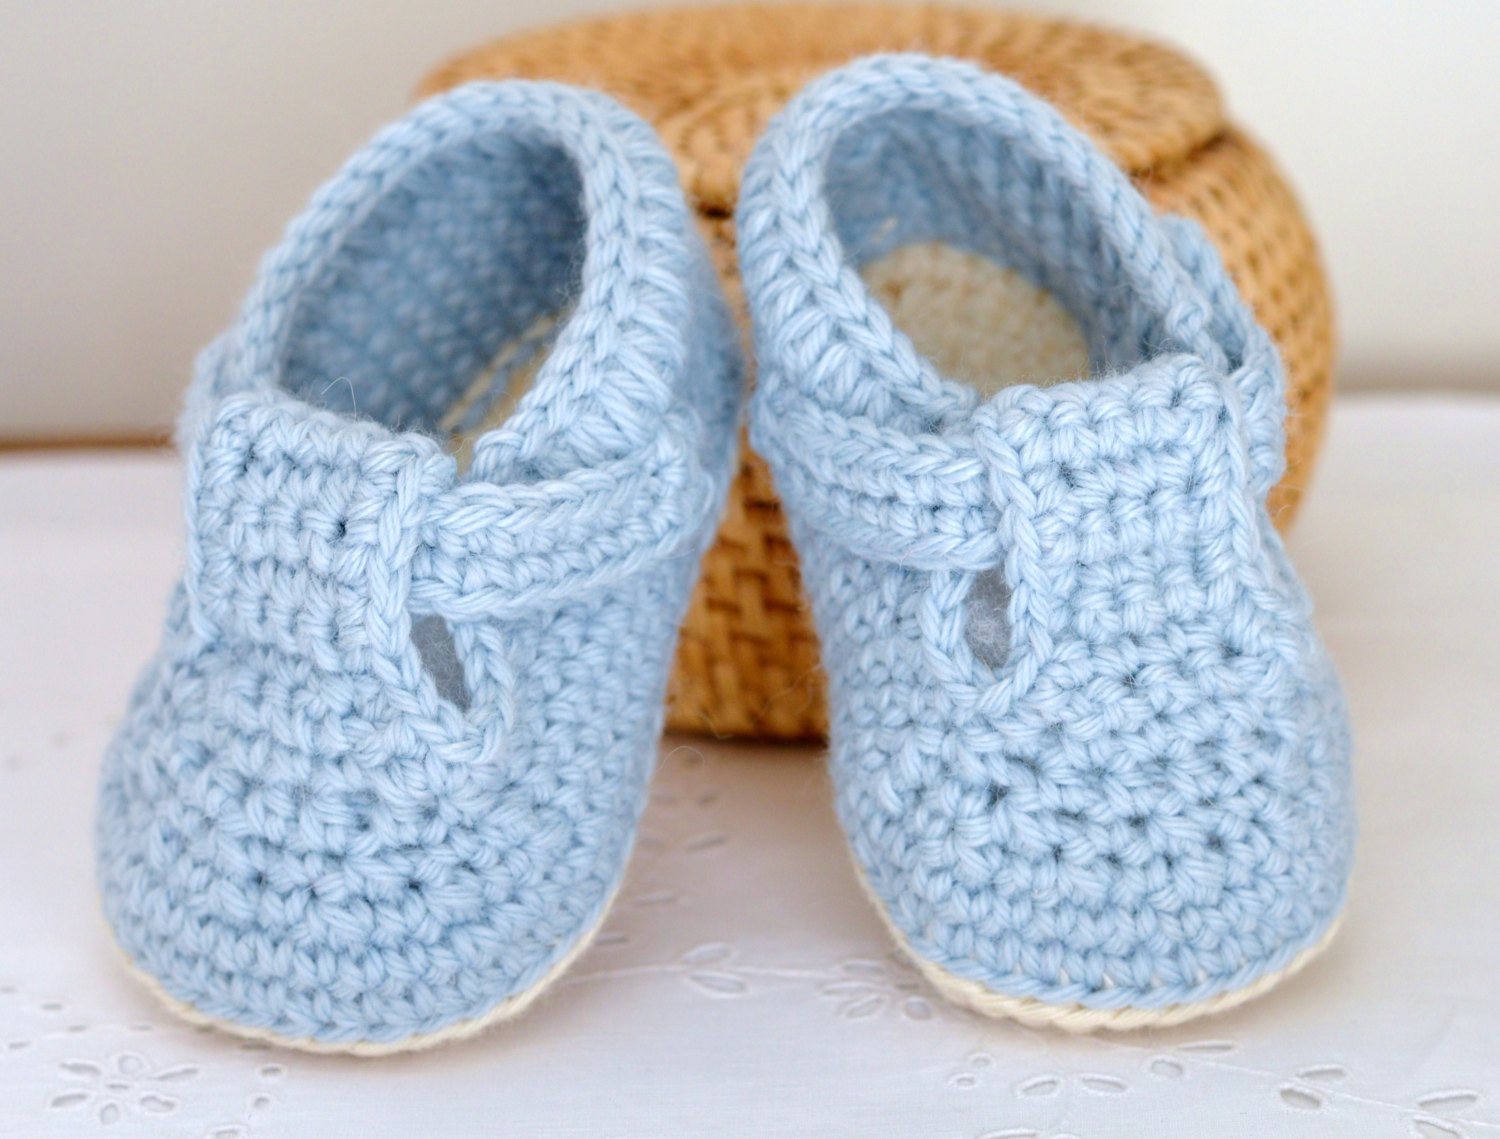 Crochet Baby Sandals Pattern Awesome Crochet Pattern Baby Shoes Classic T Bar Shoes for Baby Boys Of Perfect 43 Photos Crochet Baby Sandals Pattern